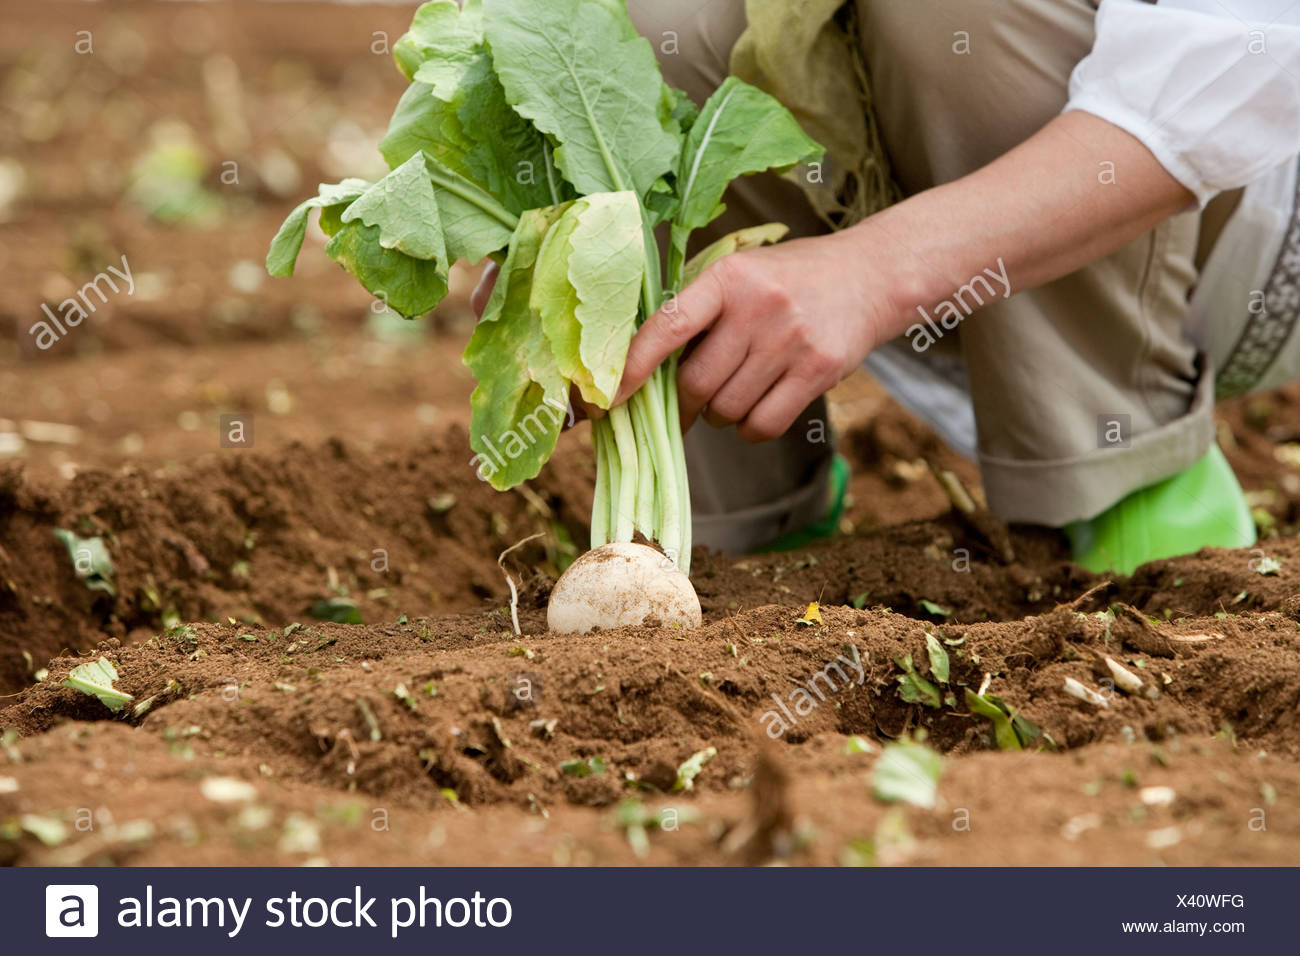 Human hand of mature woman harvesting - Stock Image